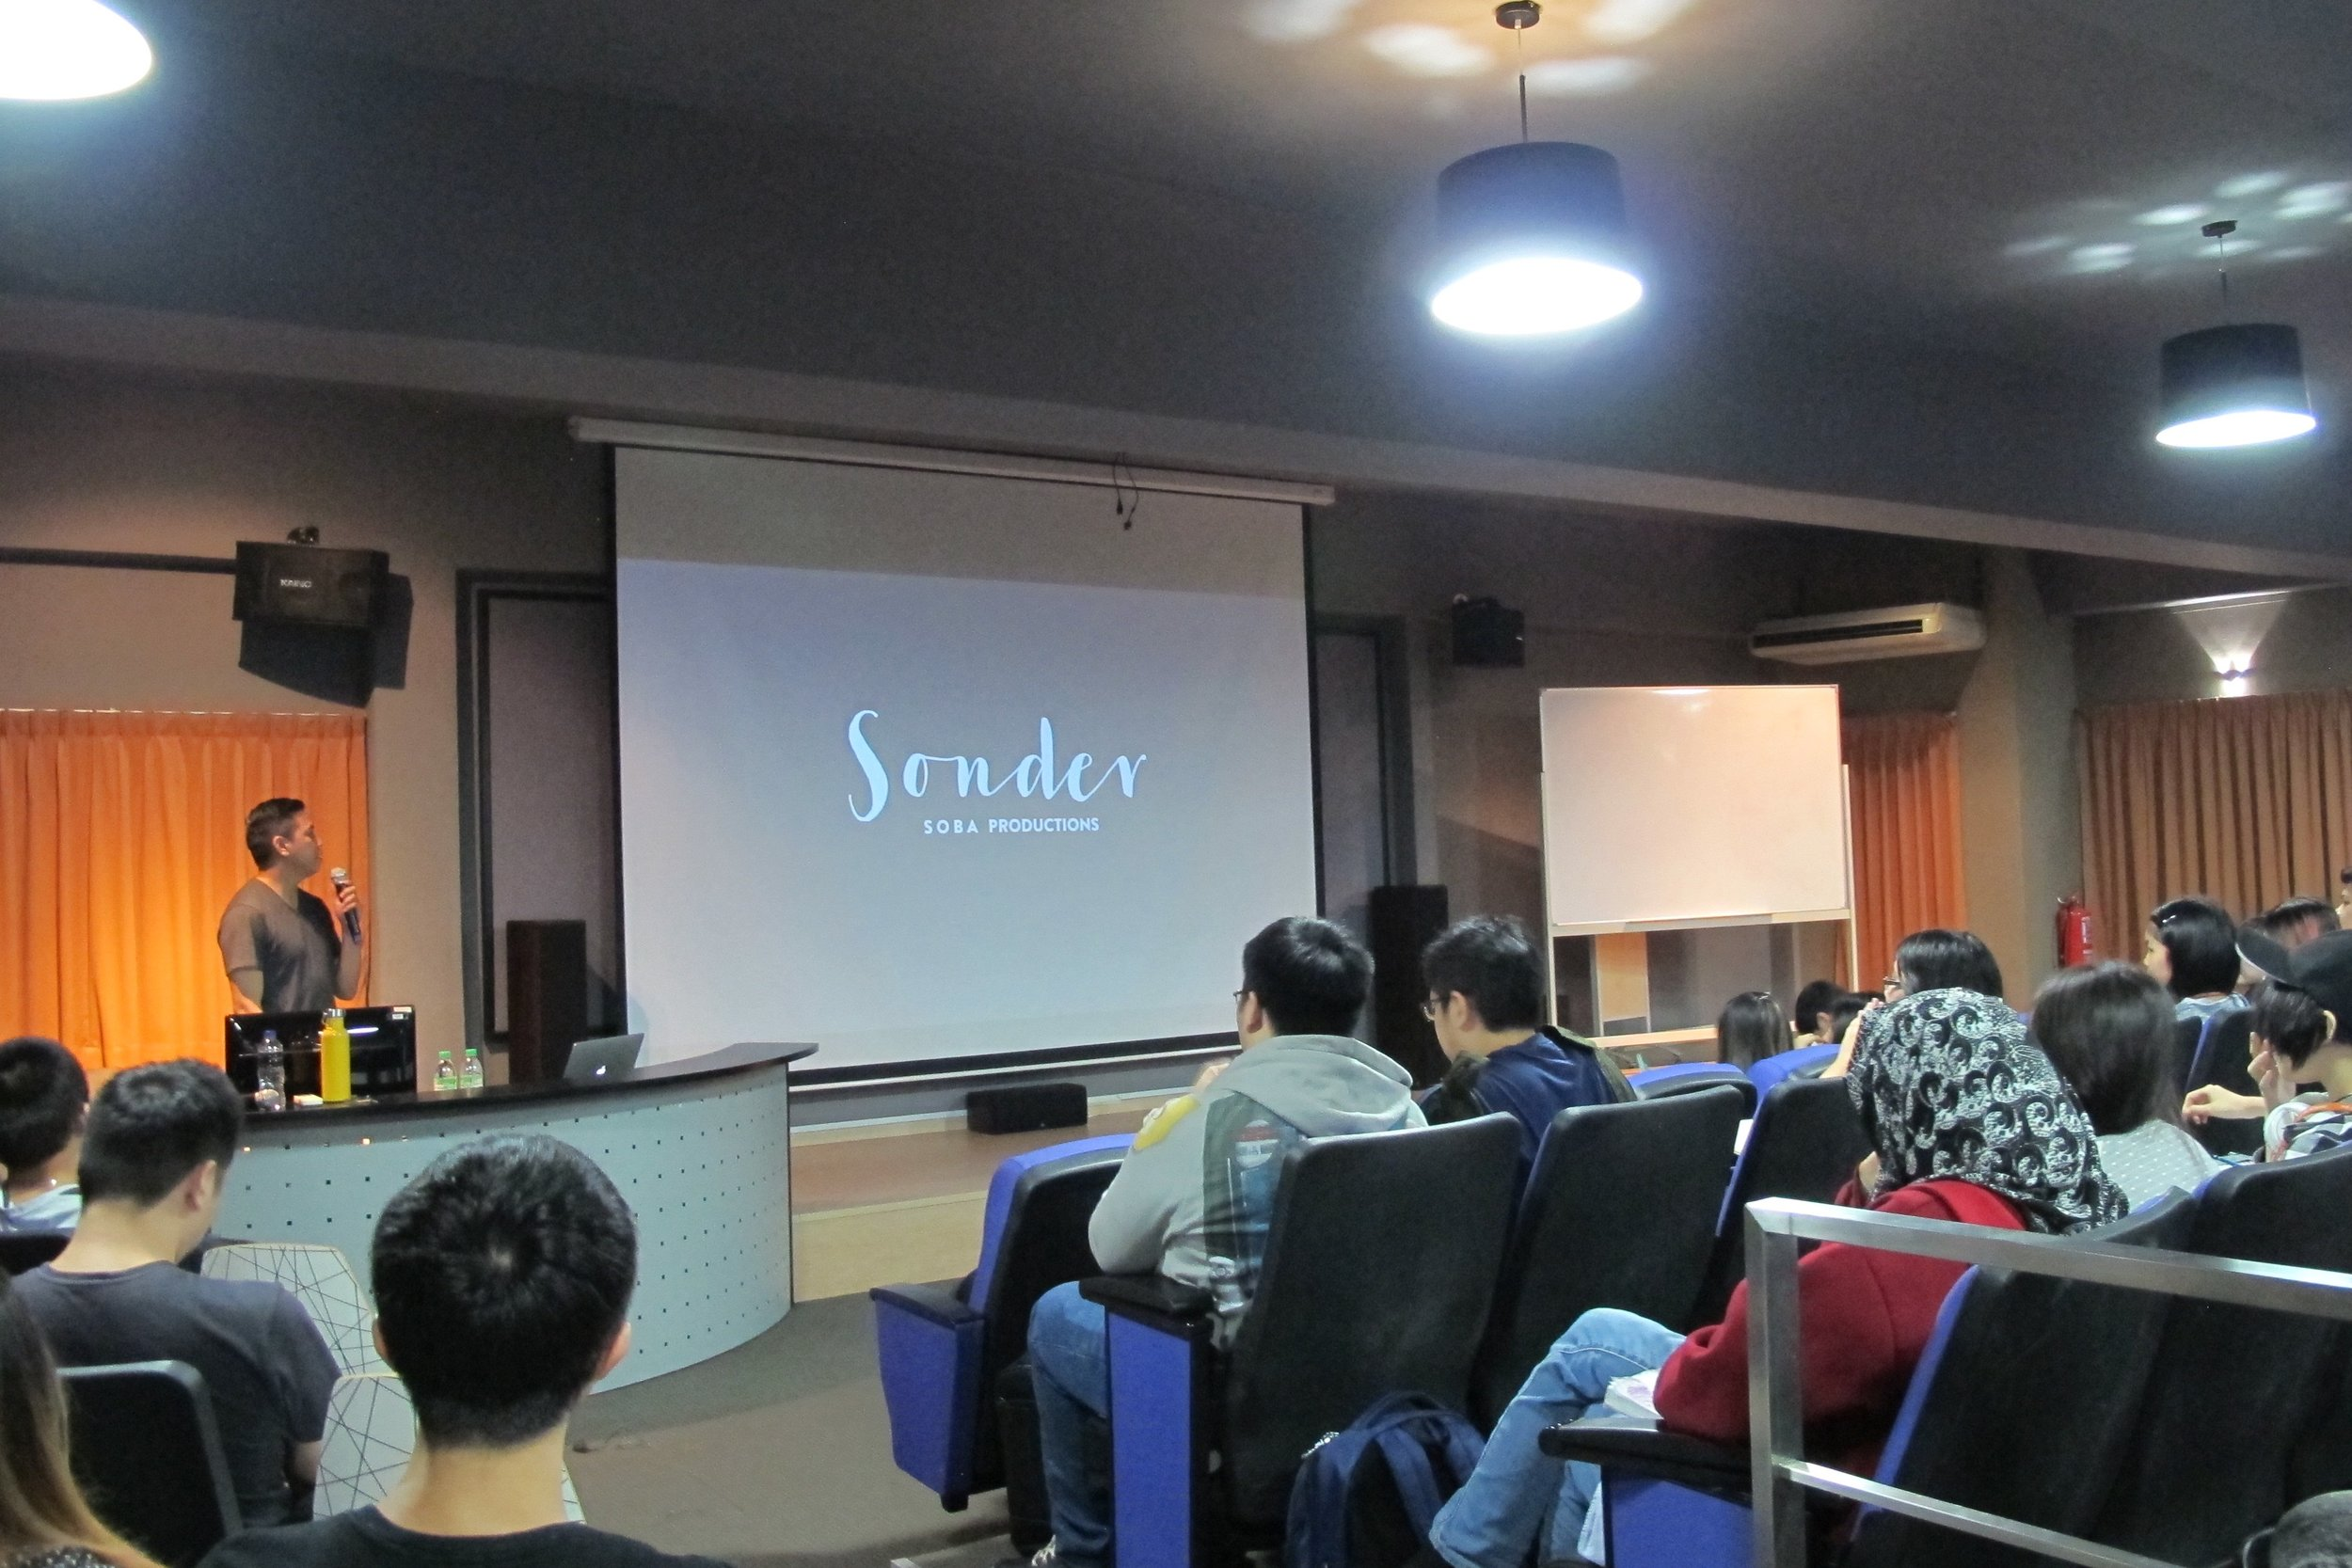 Neth speaking at The One Academy in Malaysia. Students and faculty are hyped for  Sonder .